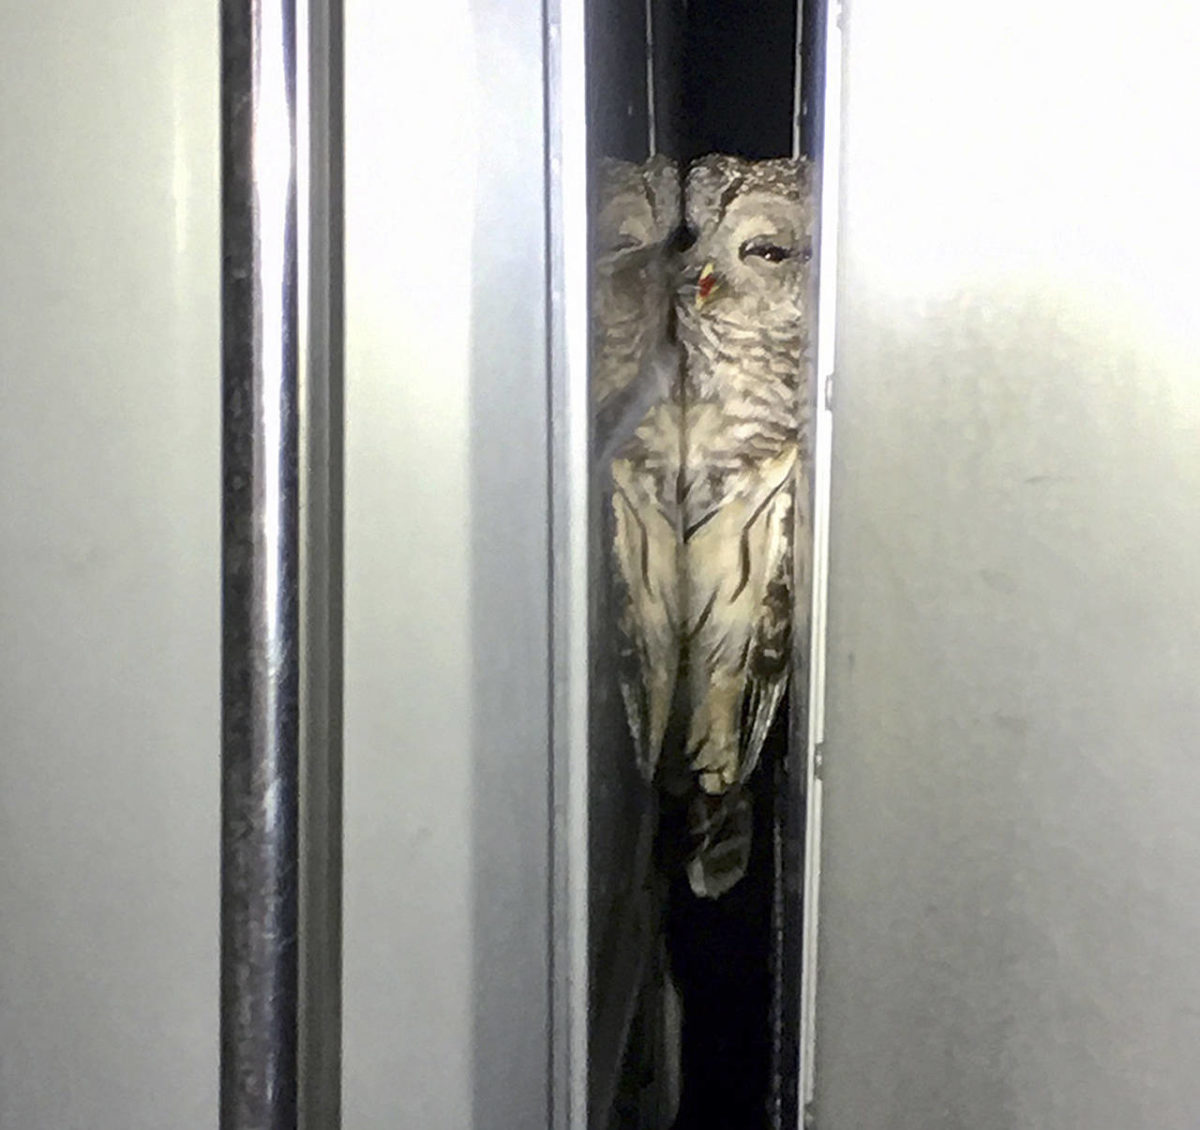 owl stuck between truck cab and trailer1.jpg